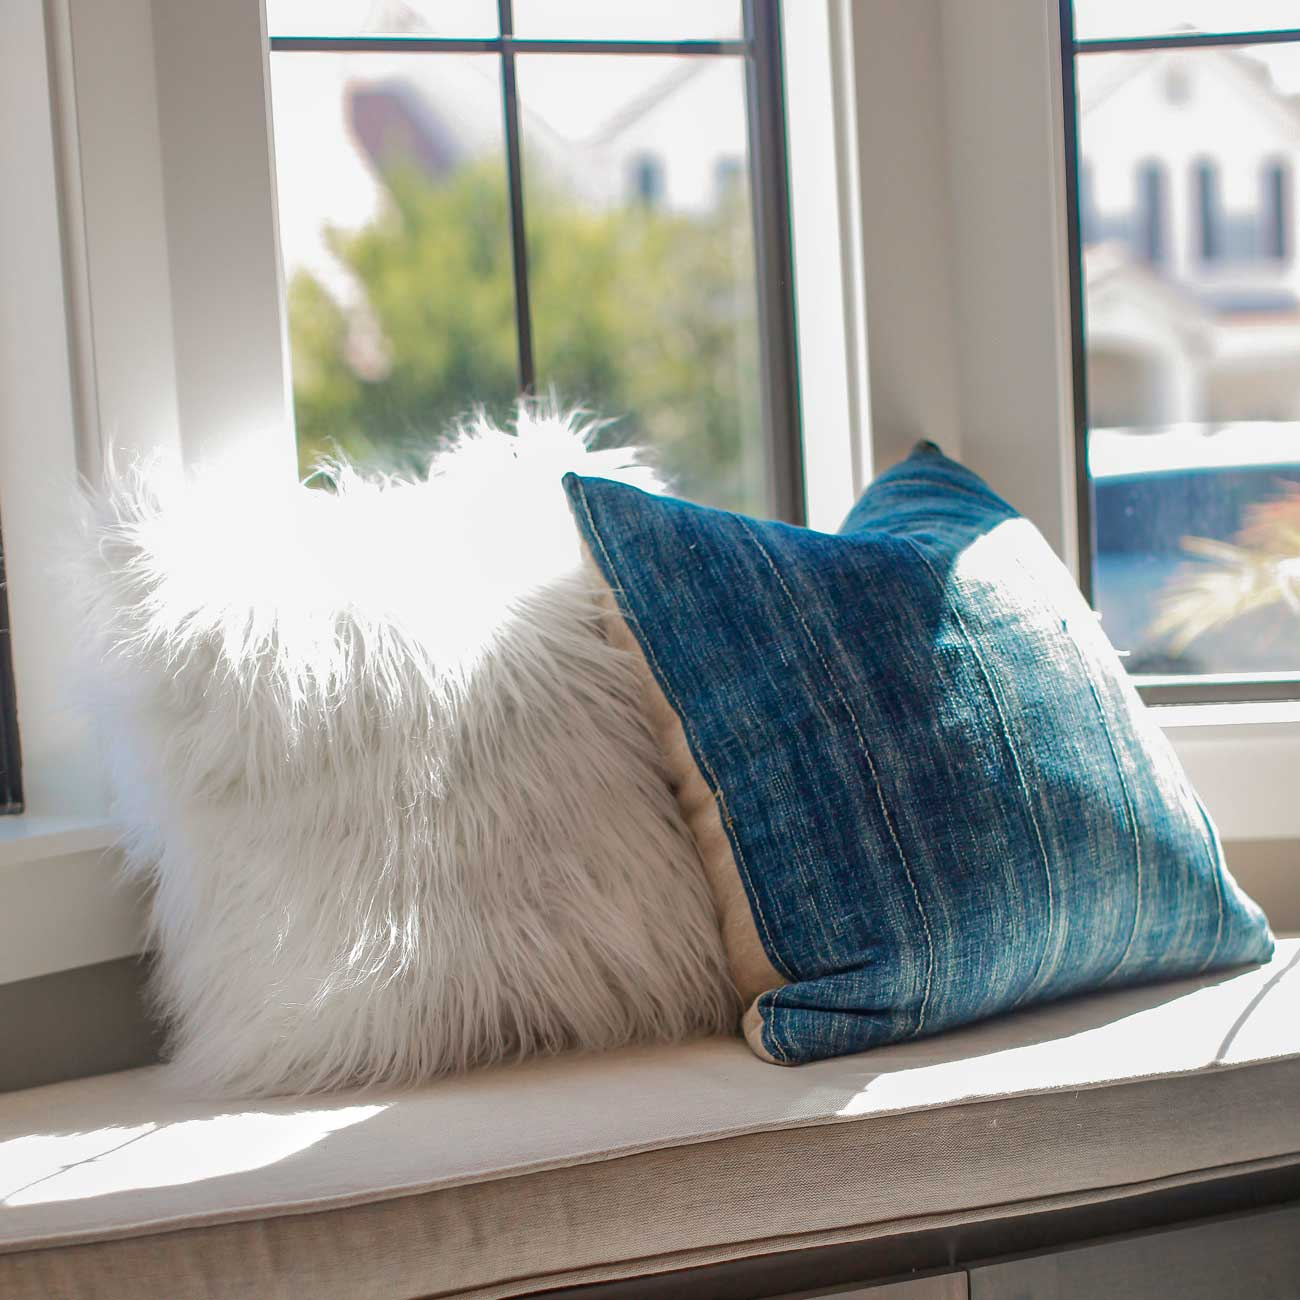 Furry and blue